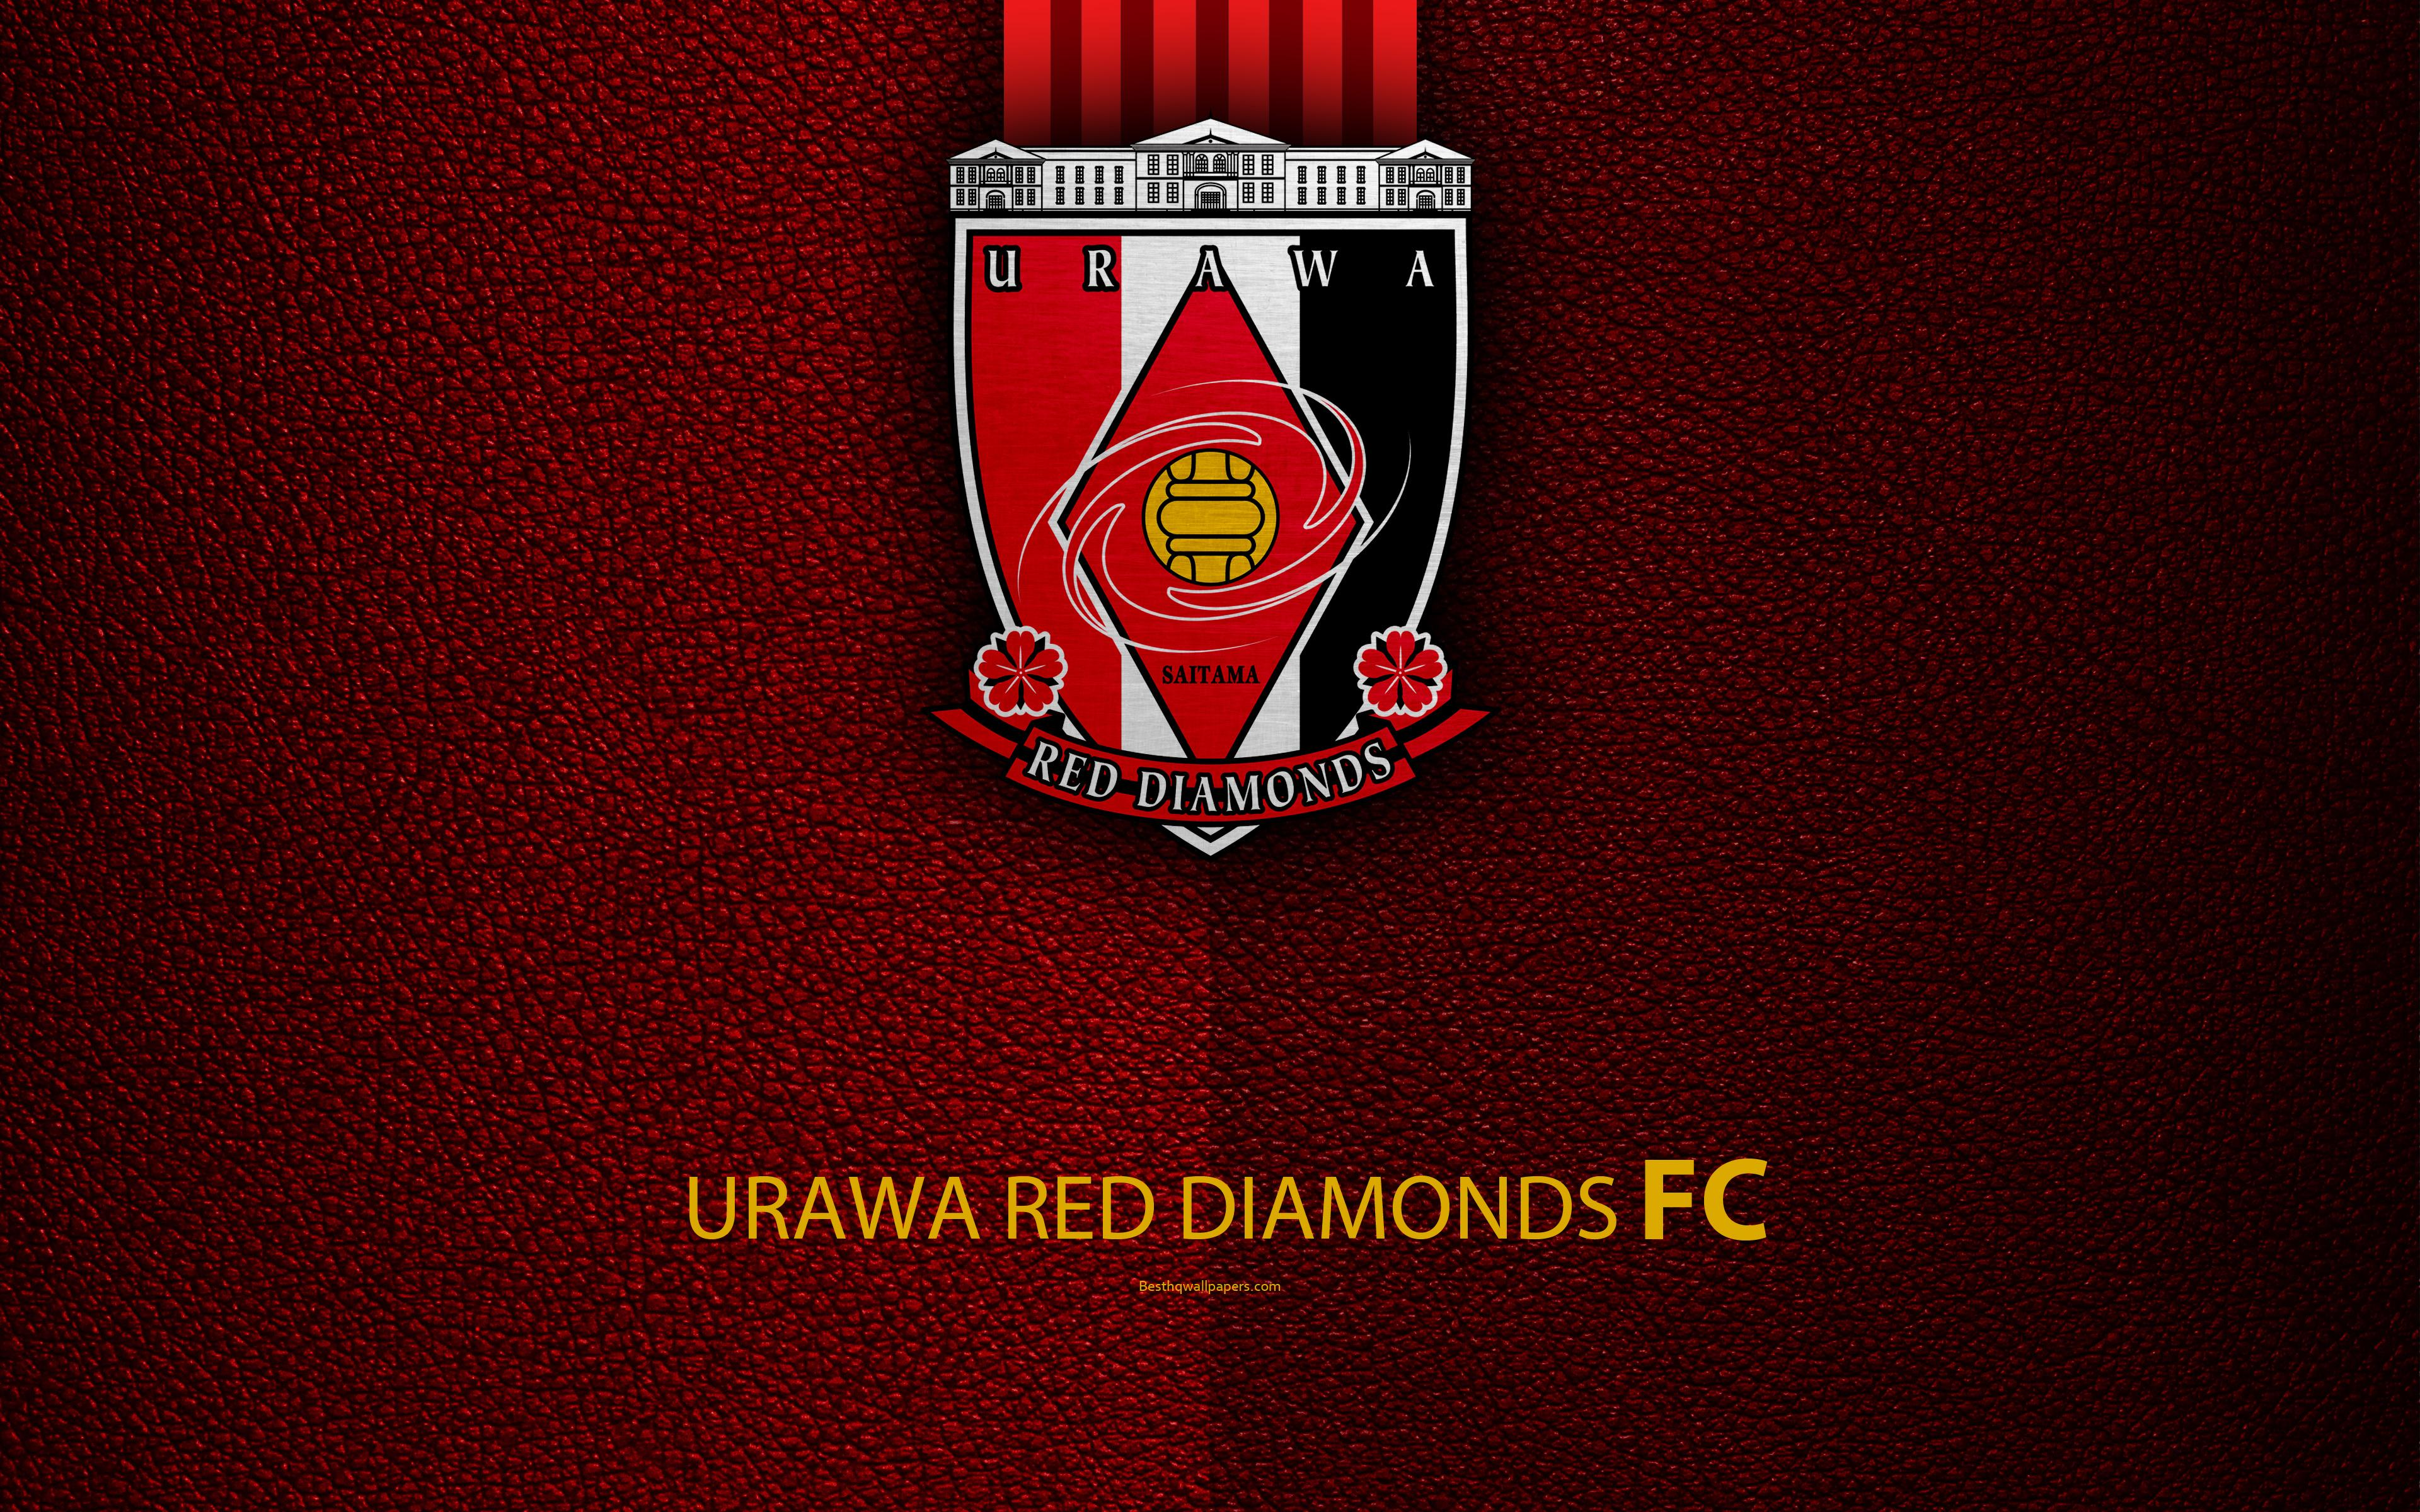 Download wallpapers Urawa Red Diamonds FC, 4k, logo, leather texture ...